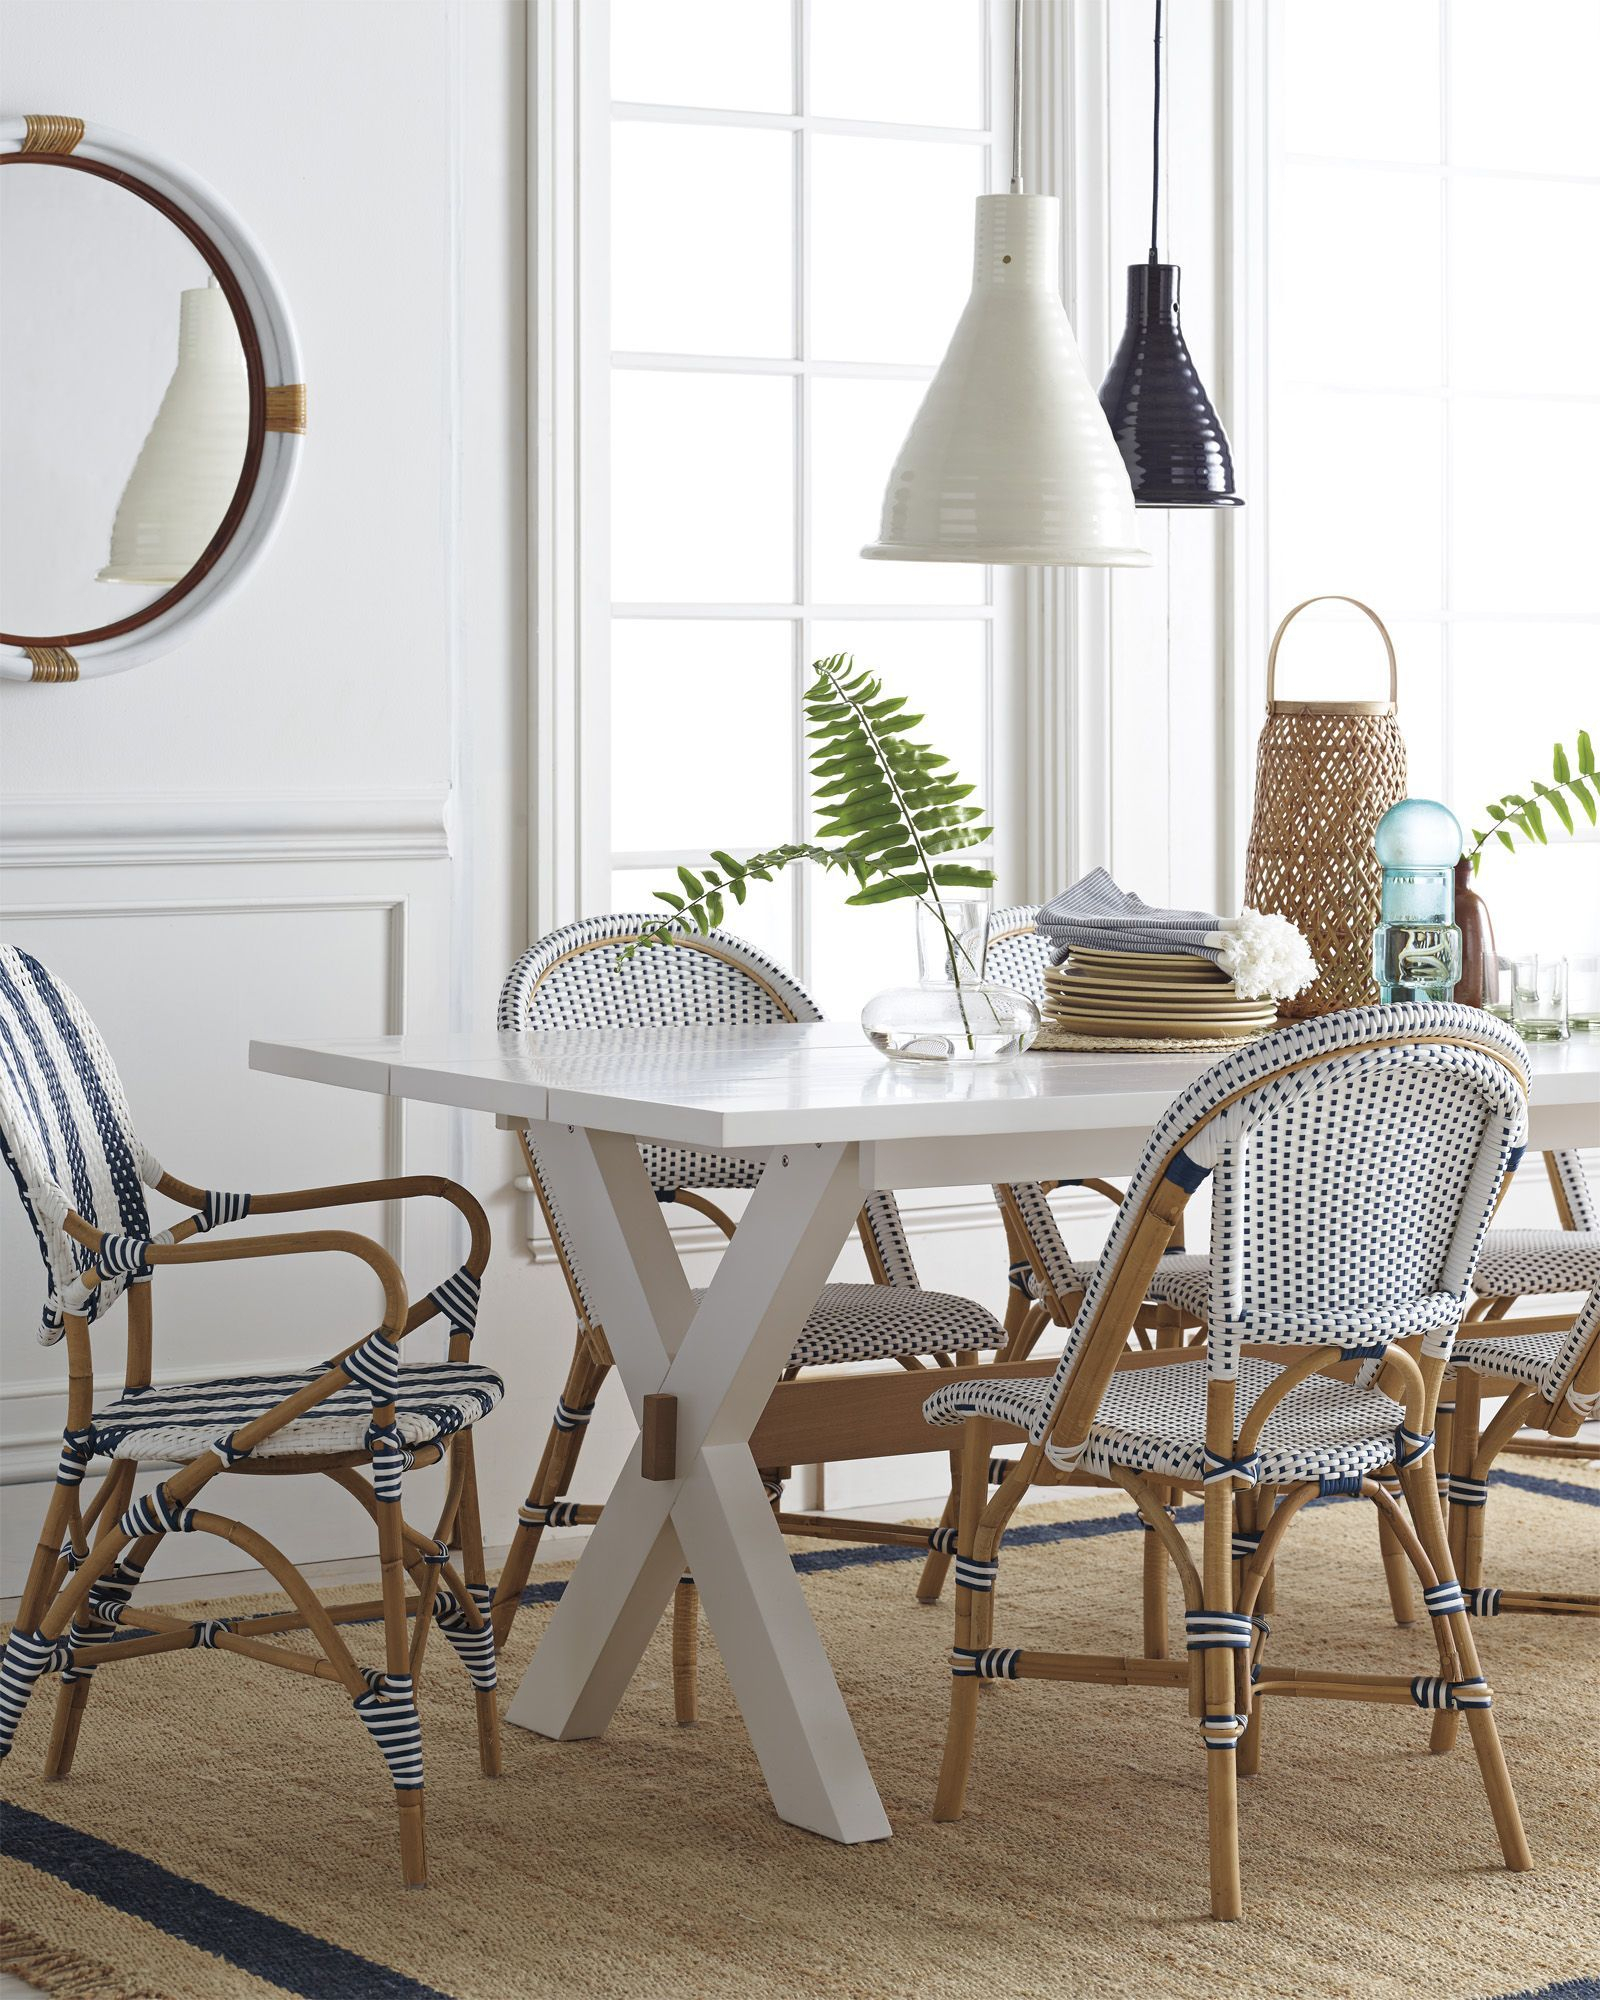 French Bistro Chairs, Bistro Chairs Pertaining To Kaelin 5 Piece Dining Sets (#7 of 20)